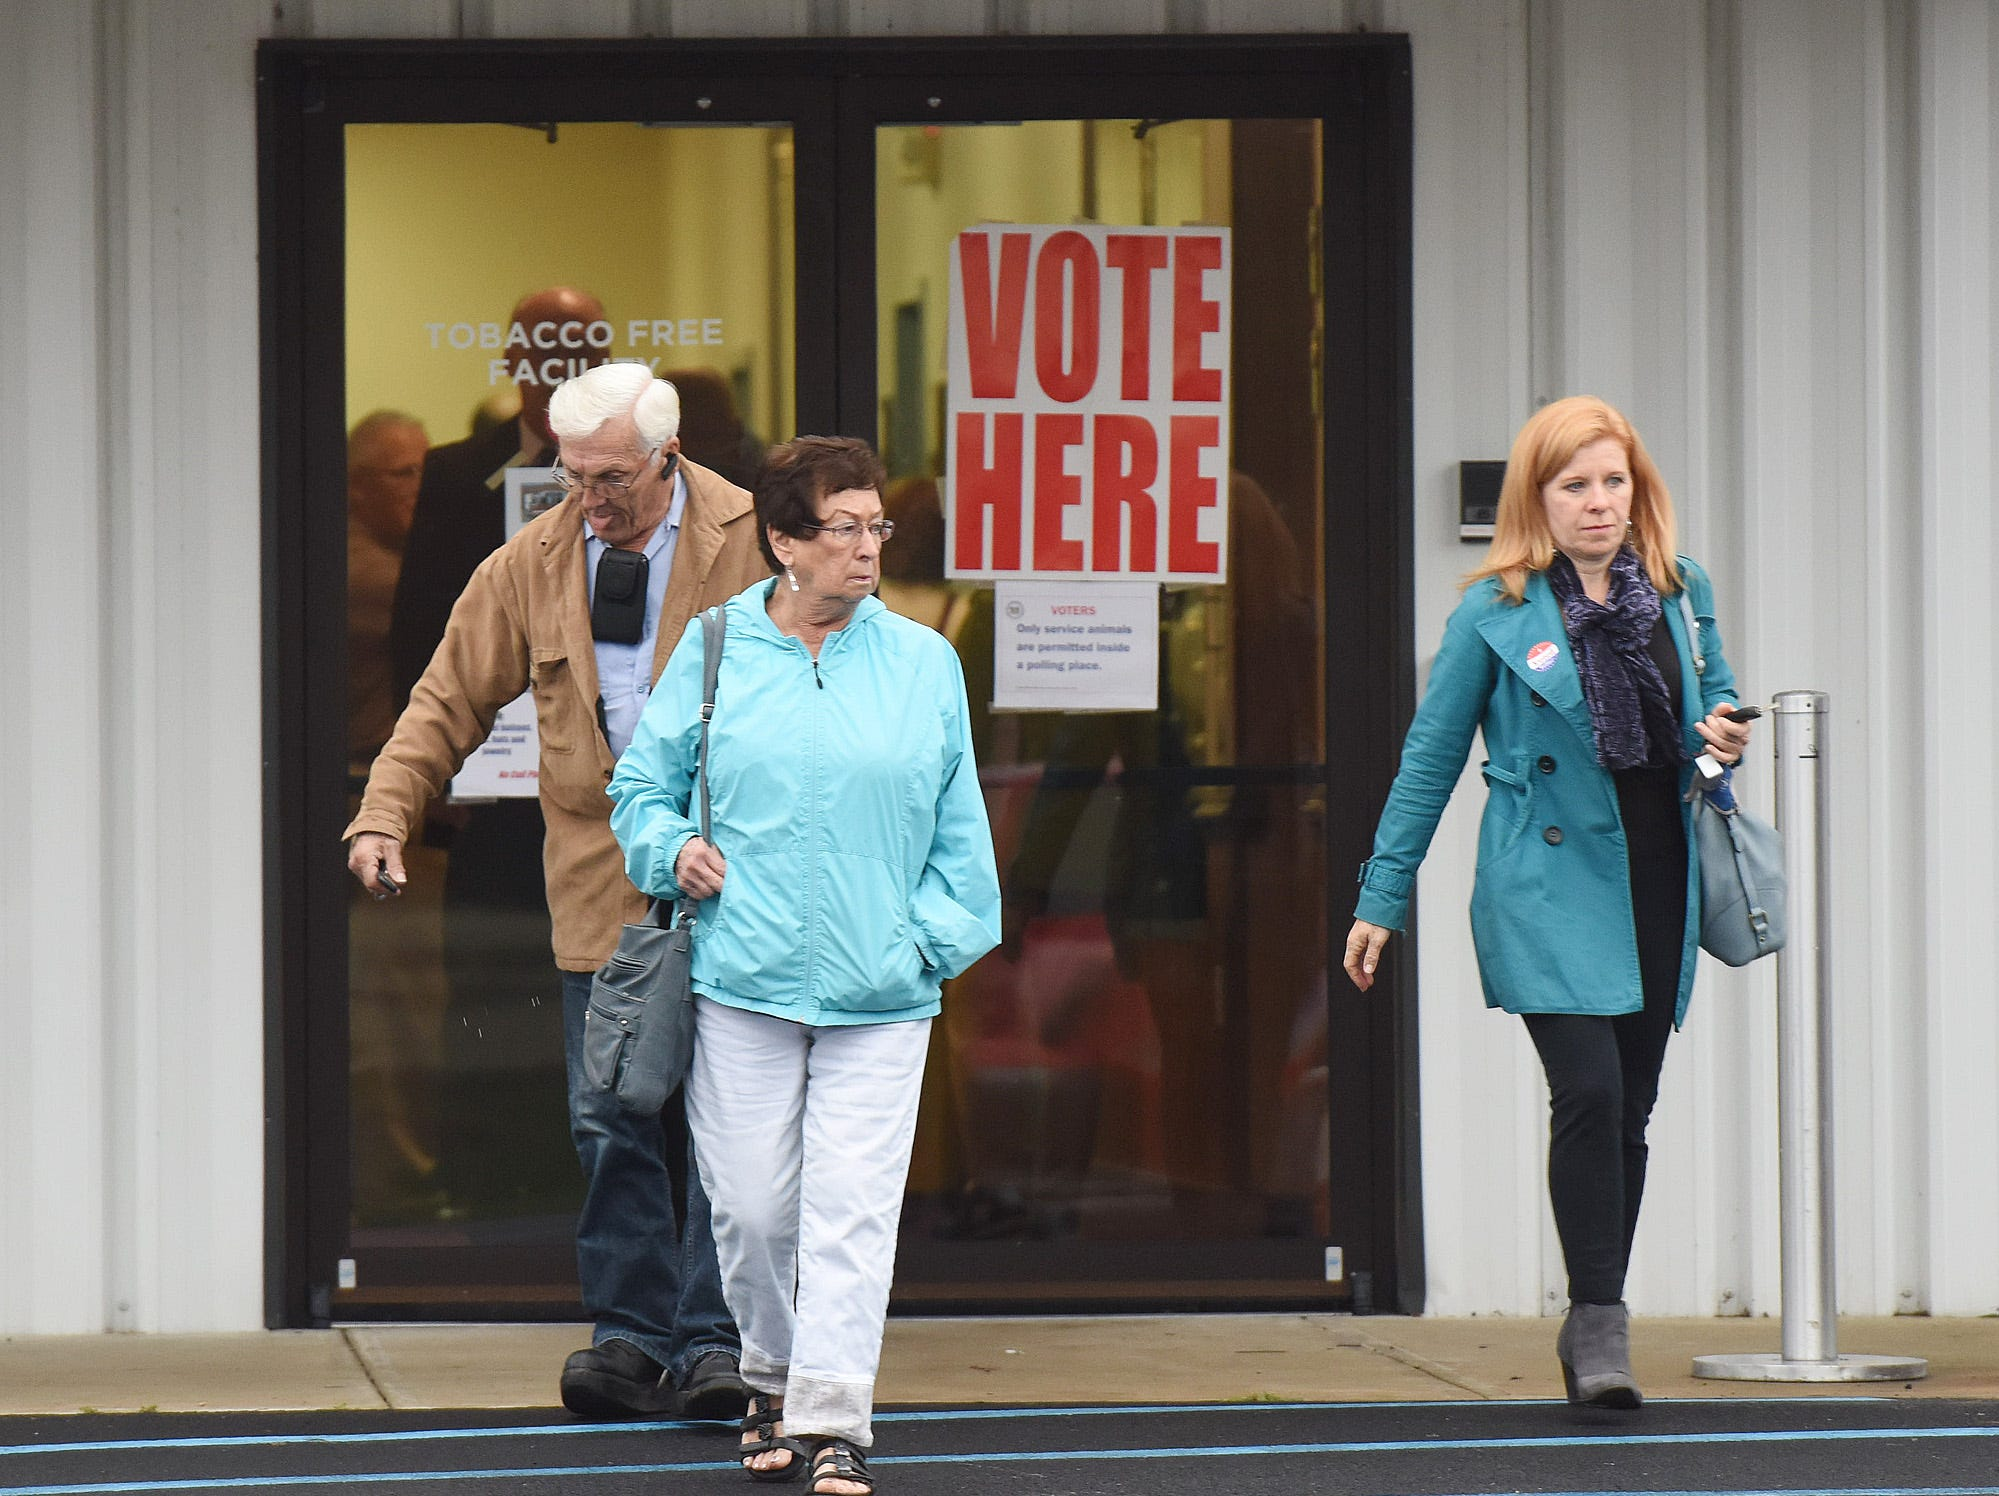 Voter turnout in eastern Sussex County has been steady at polling places in Rehoboth, Roxana, and Angola as candidates still greet supporters for their support.